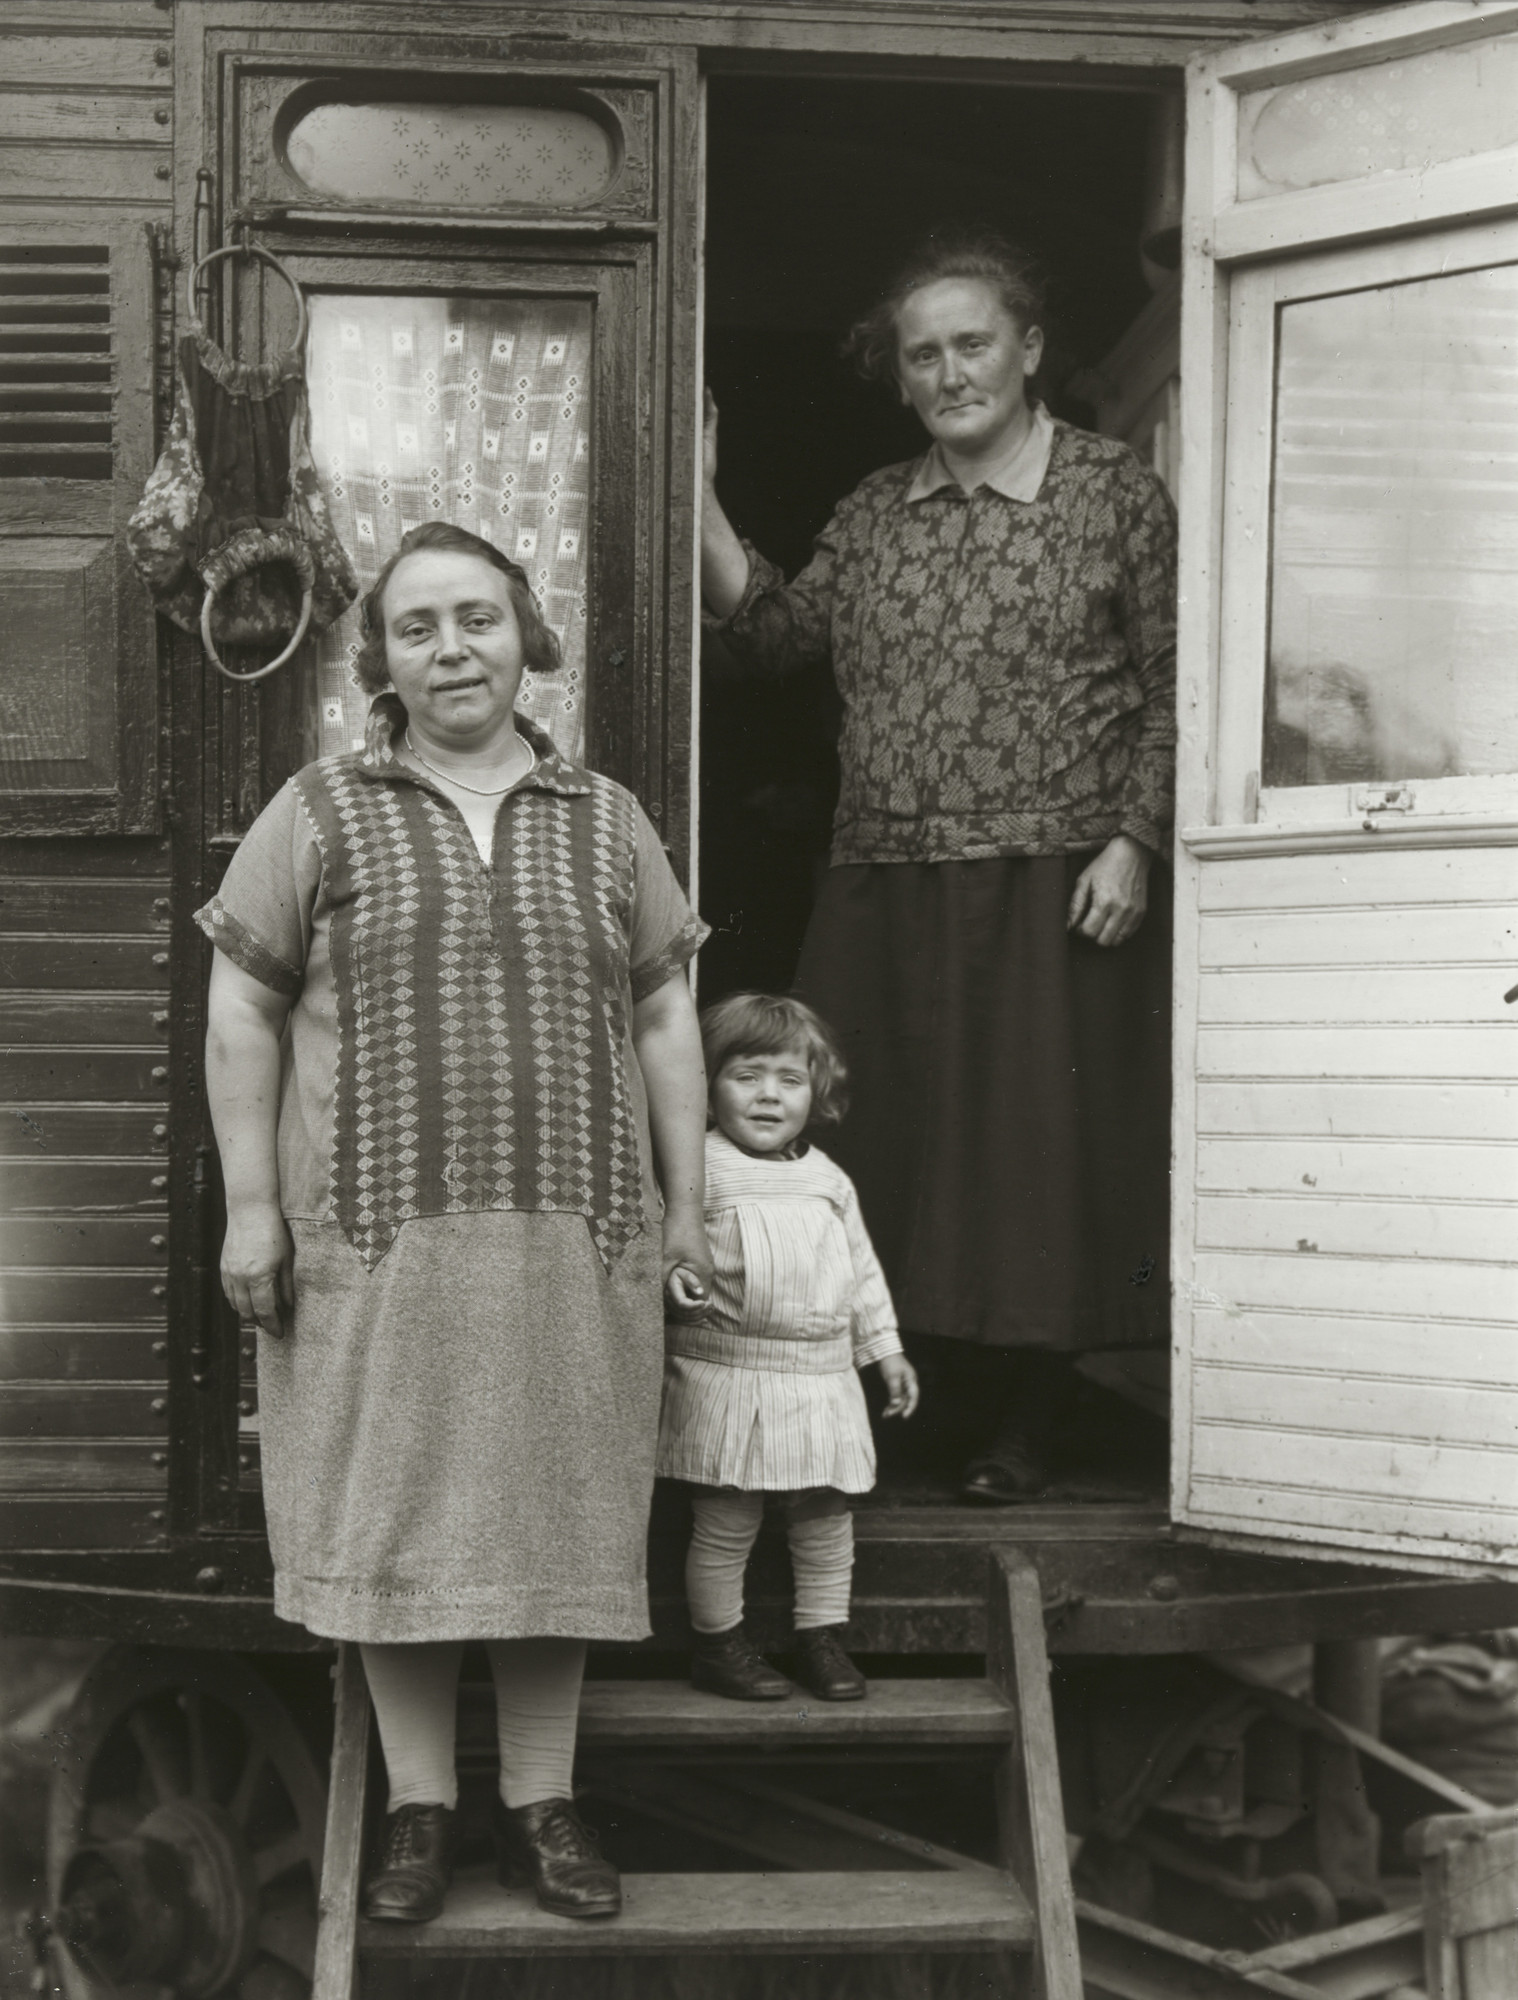 August Sander. Three Generations in Fairground Caravan. 1926-32